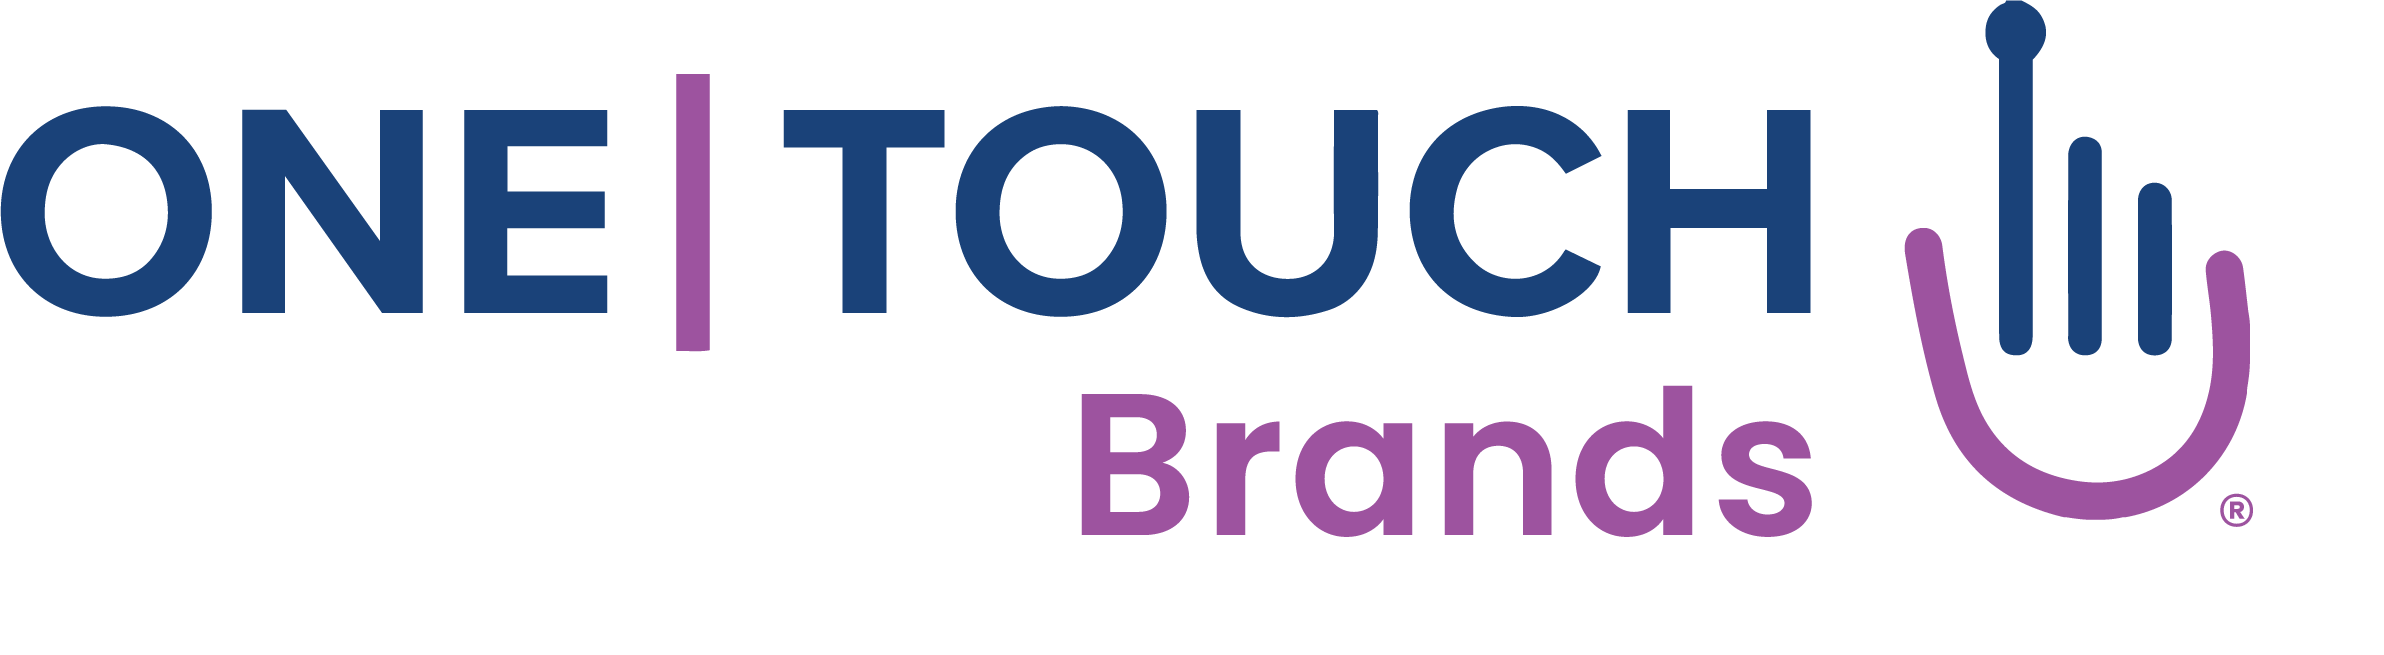 One Touch Brands Logo